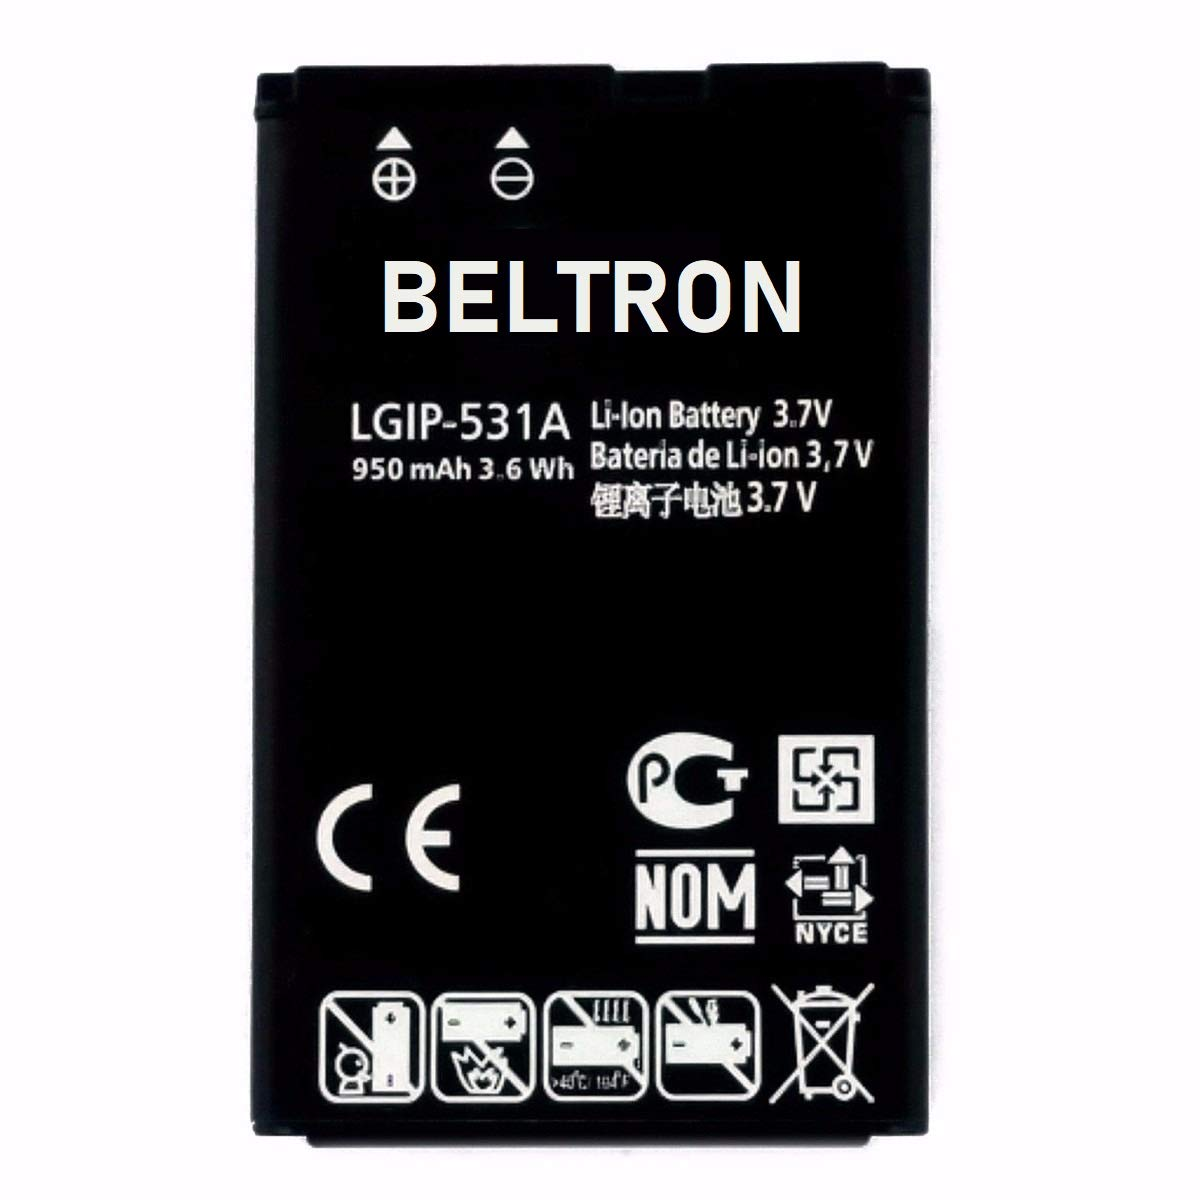 New LGIP-531A SBPL0090501 / SBPL0090503 BELTRON Replacement Battery for Envoy 2 UN160, Envoy 3 UN170, Saber UN200, 237C, 440G, 500G, T-Mobile B450, Cricket B460, AT&T B470, KU250 by BELTRON